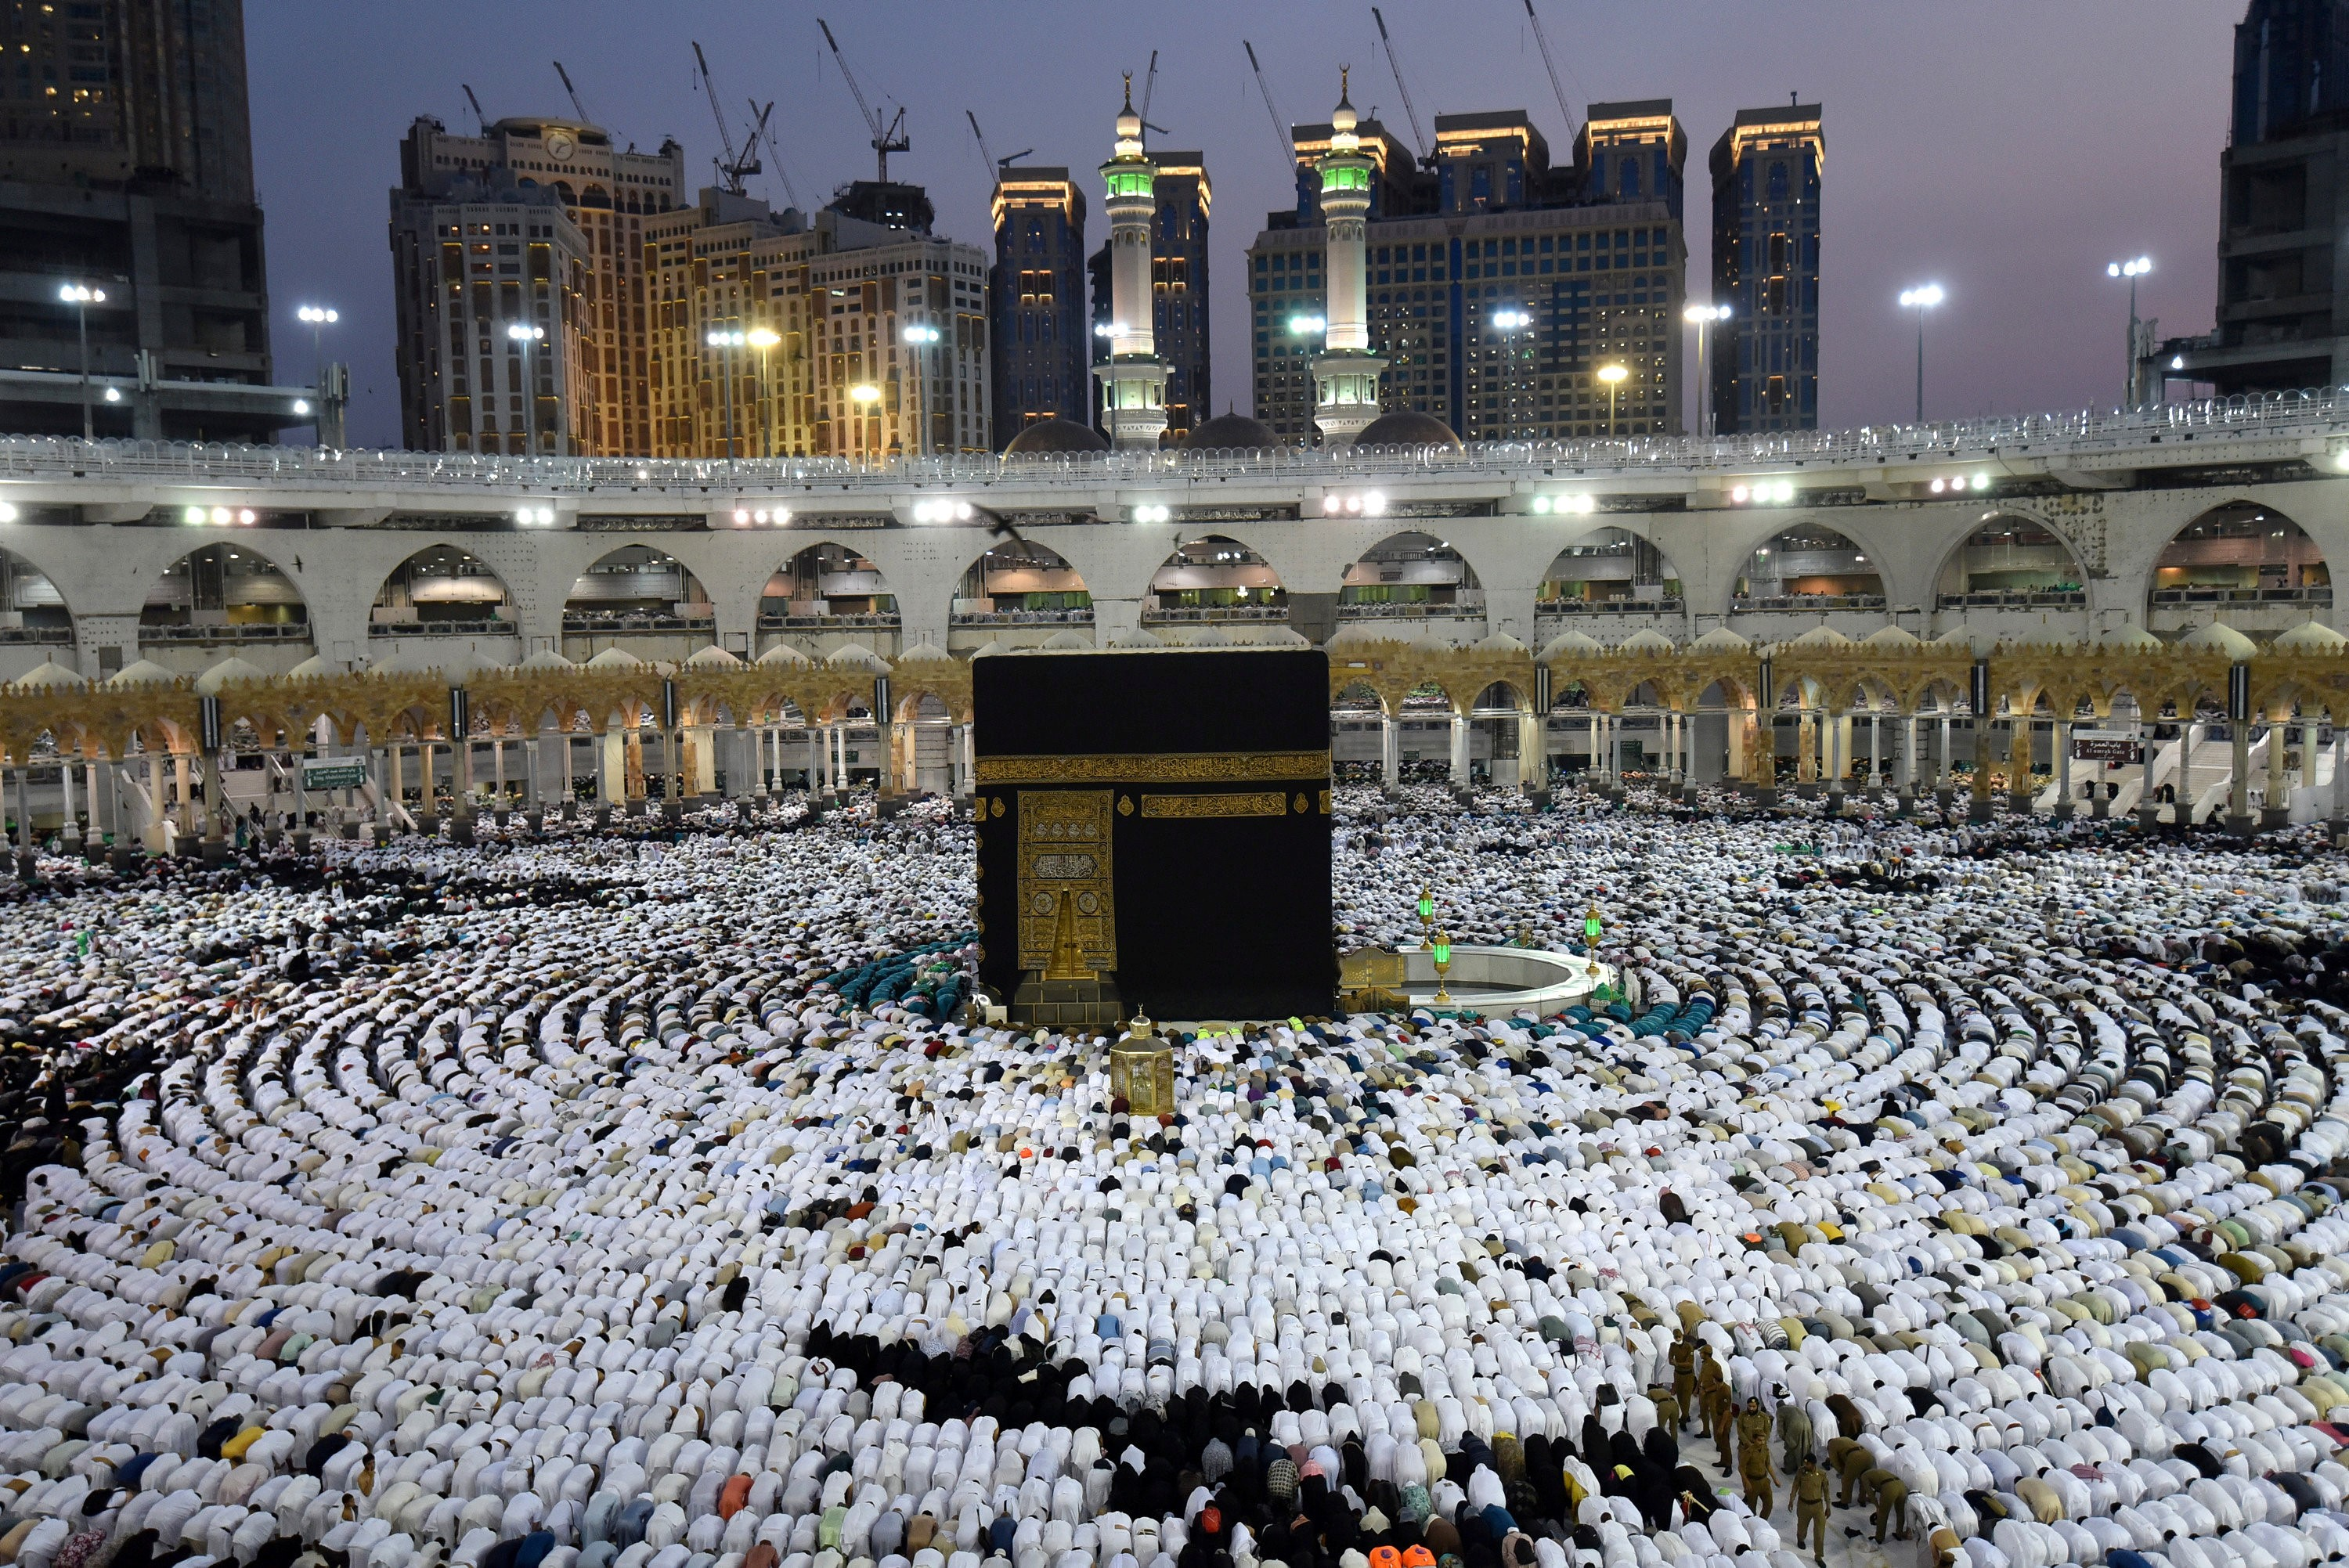 Muslims pray and gather around the holy Kaaba at the Great Mosque during the holy fasting month of Ramadan in Mecca, Saudi Arabia, May 26, 2019